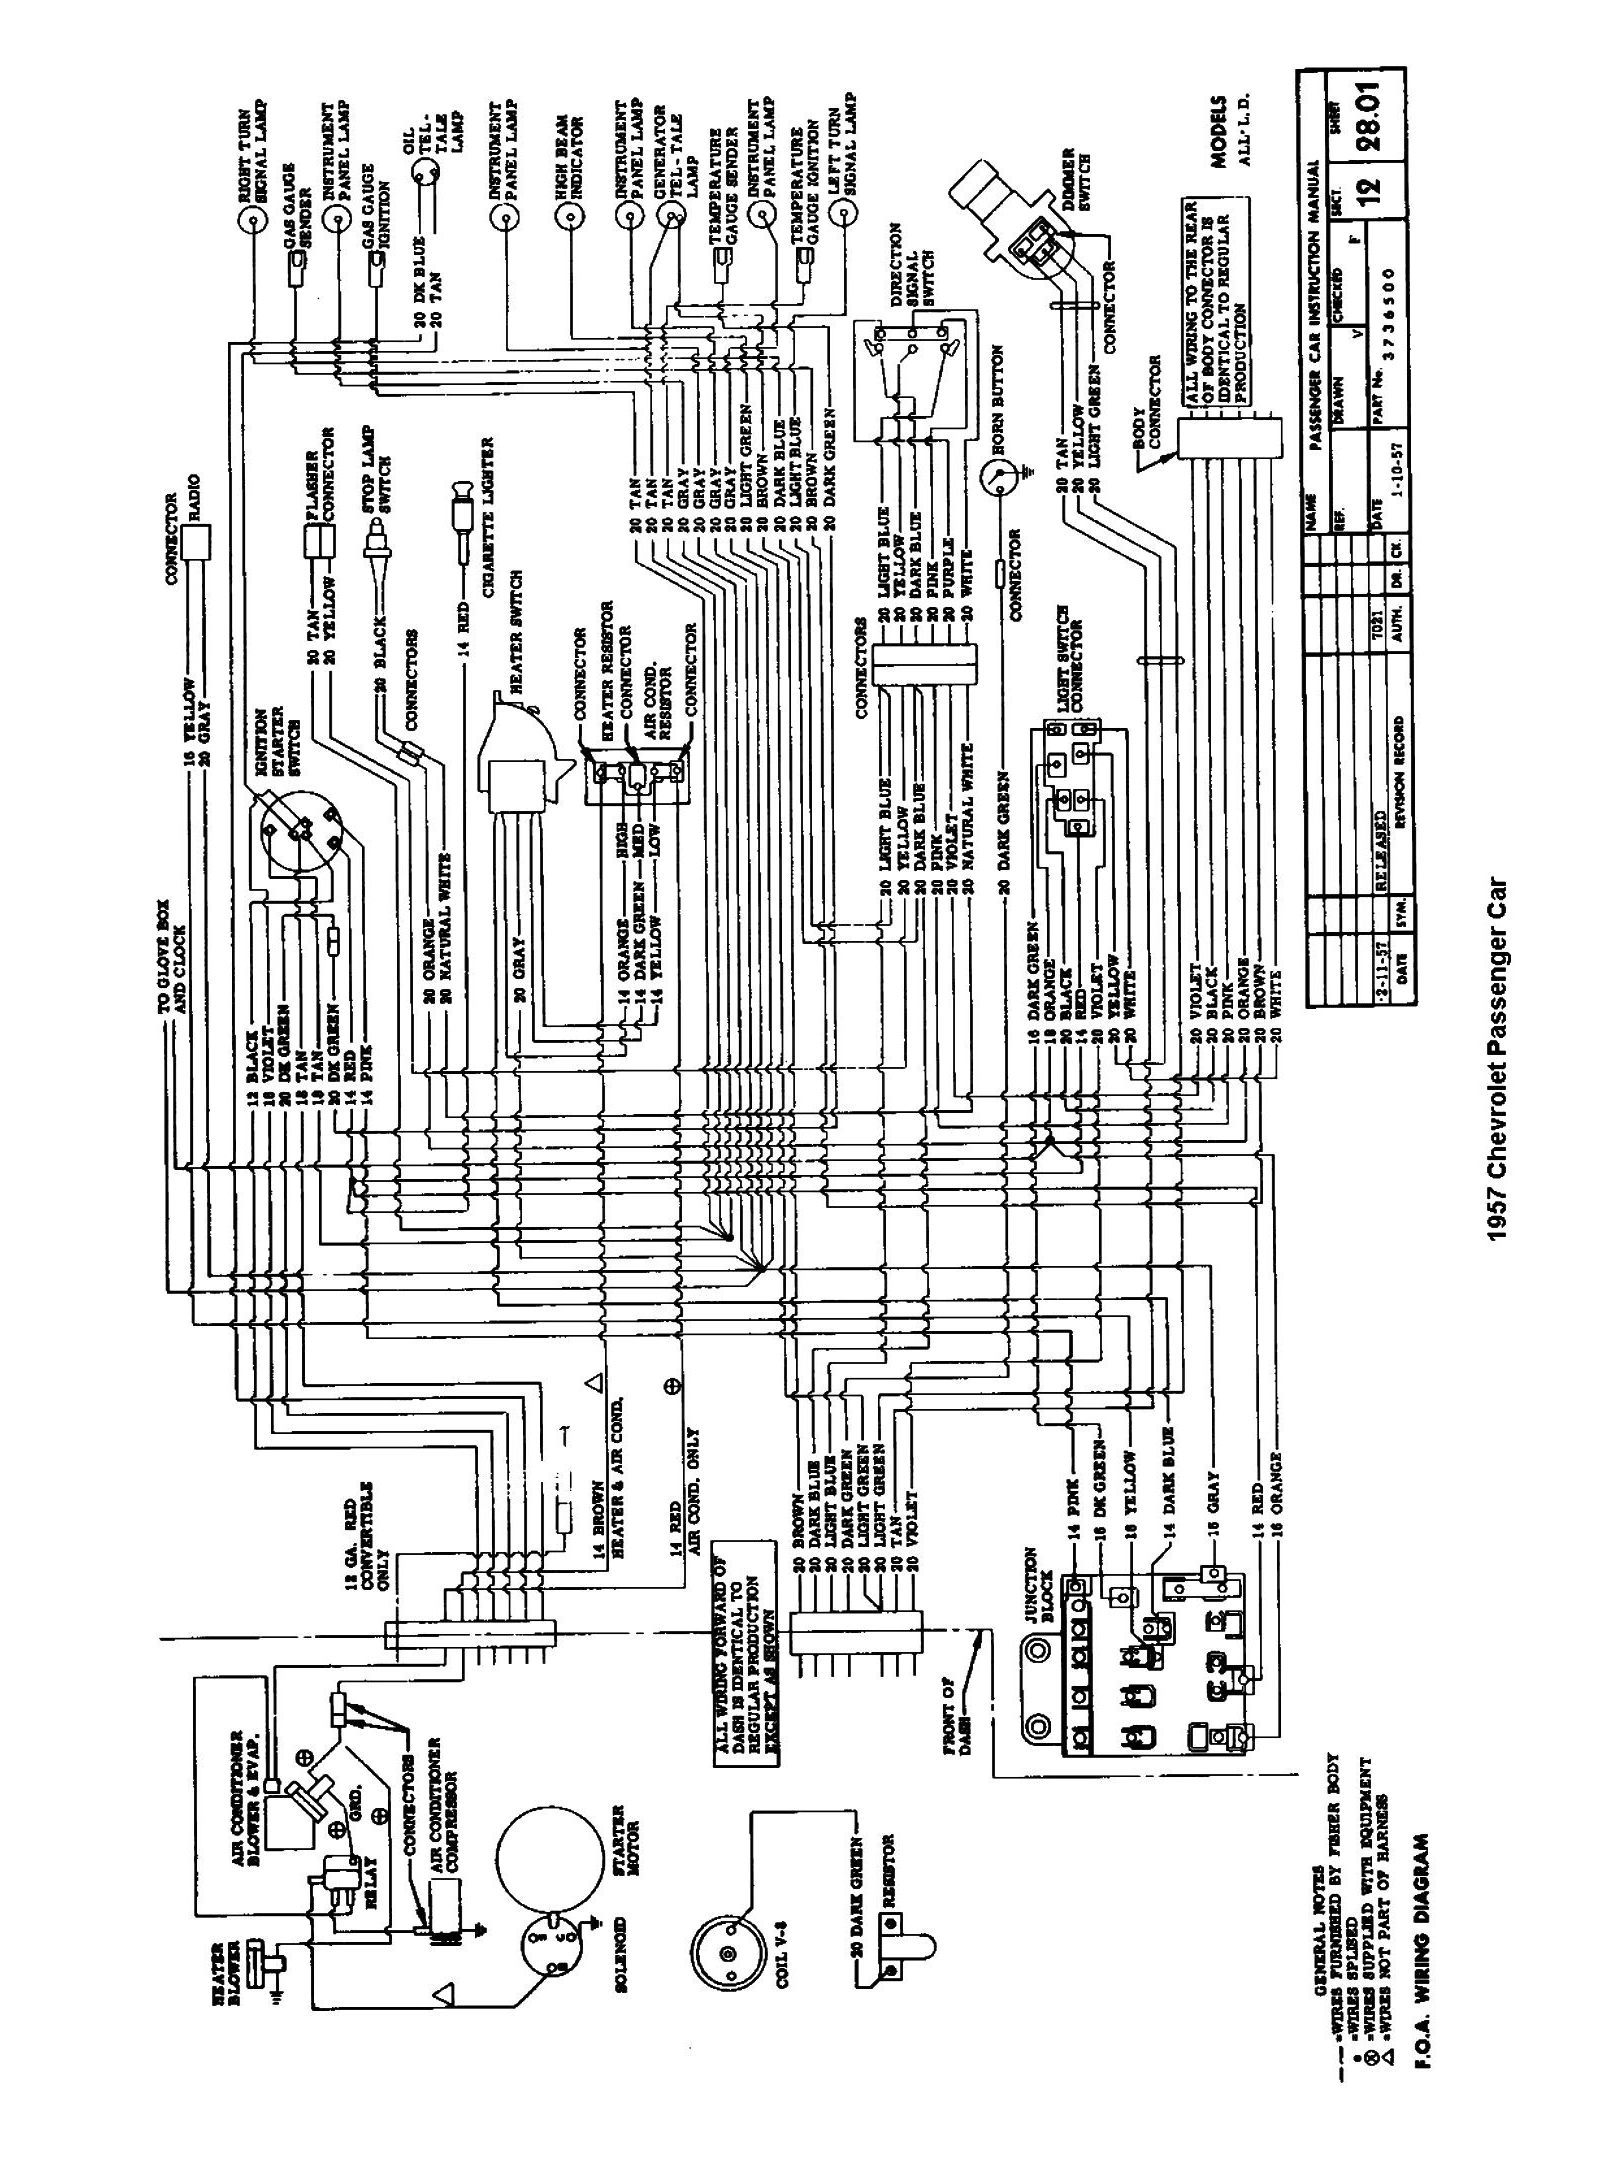 57car2 chevy wiring diagrams 1957 chevrolet wiring diagram at readyjetset.co